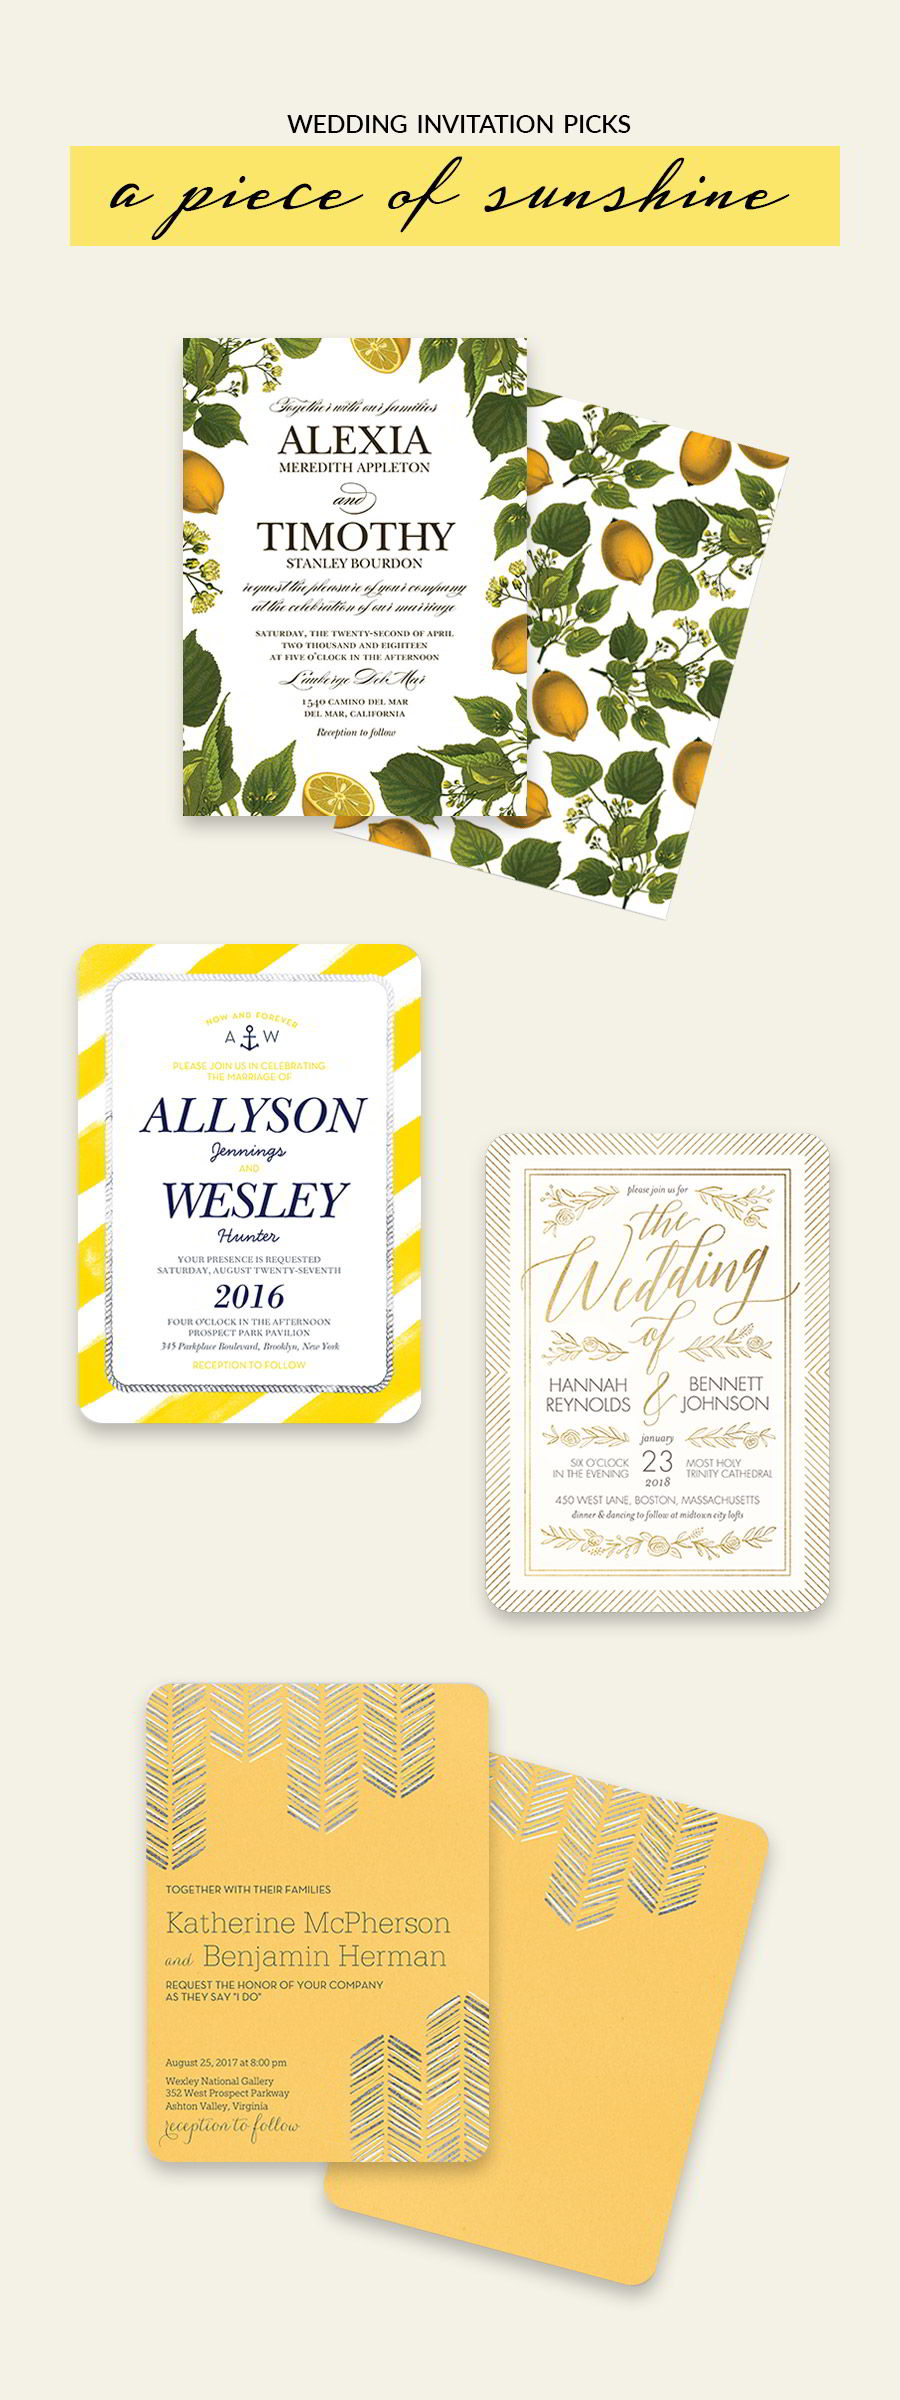 shutterfly bridal stationery yellow bright botanical wedding invitation cards color inspiration - Shutterfly Wedding Invitations